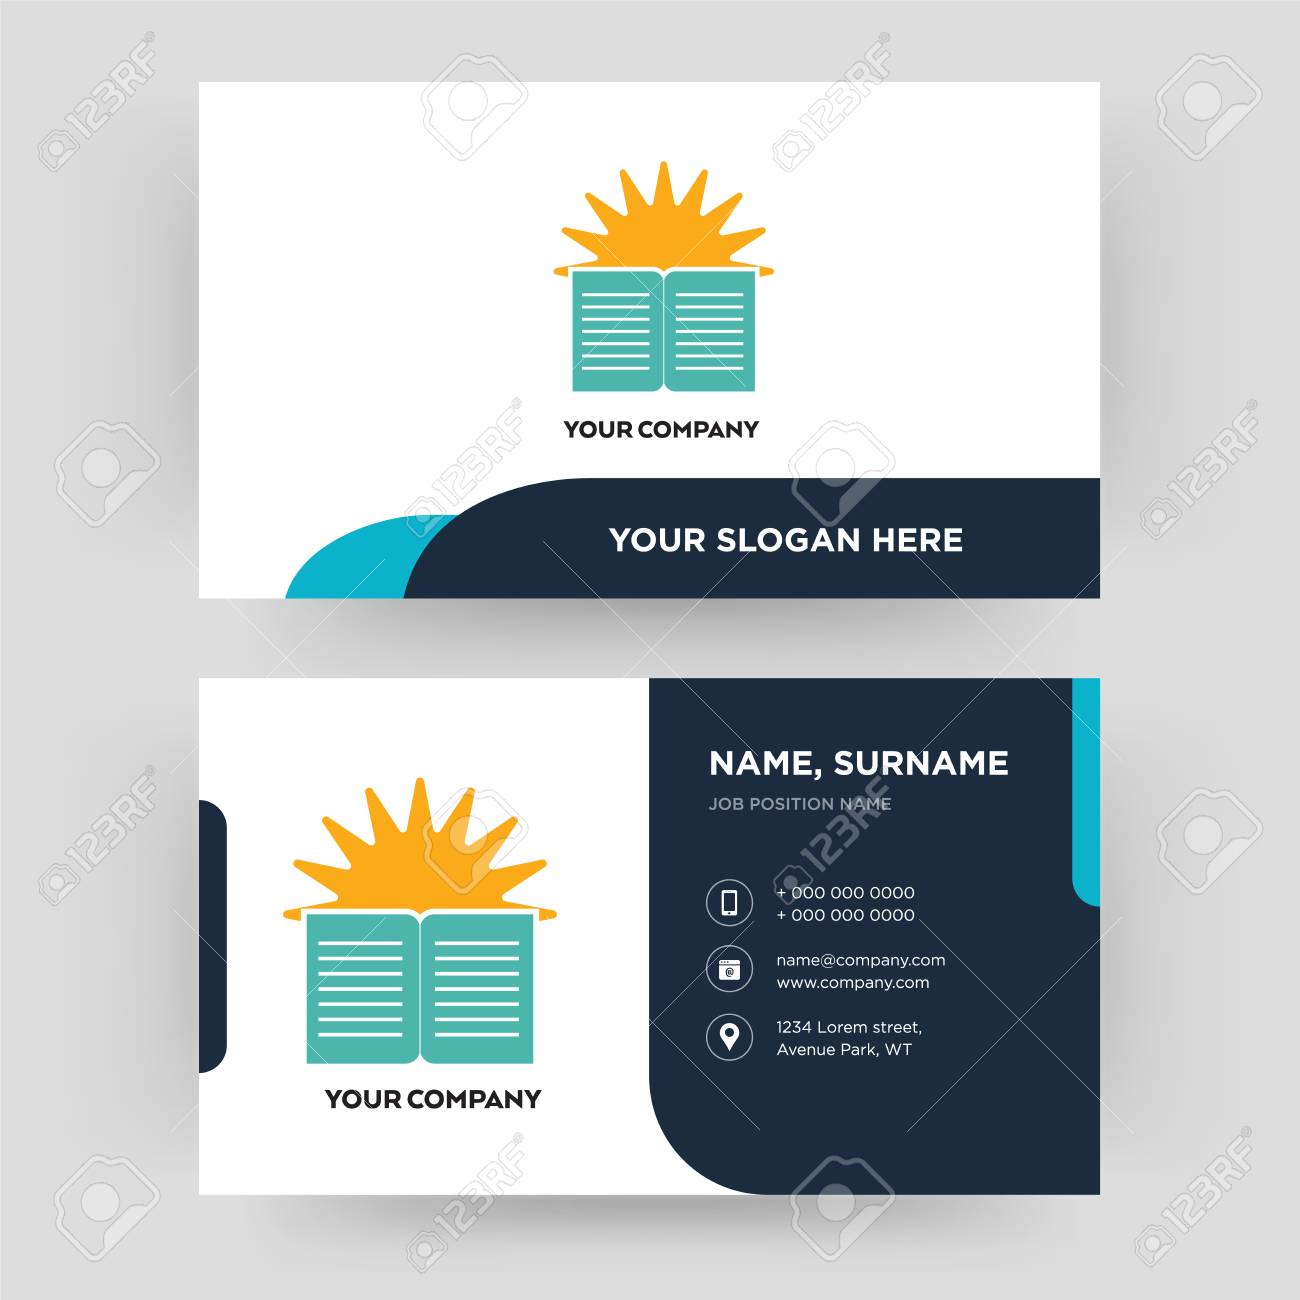 Sunday School Business Card Design Template Visiting For Your